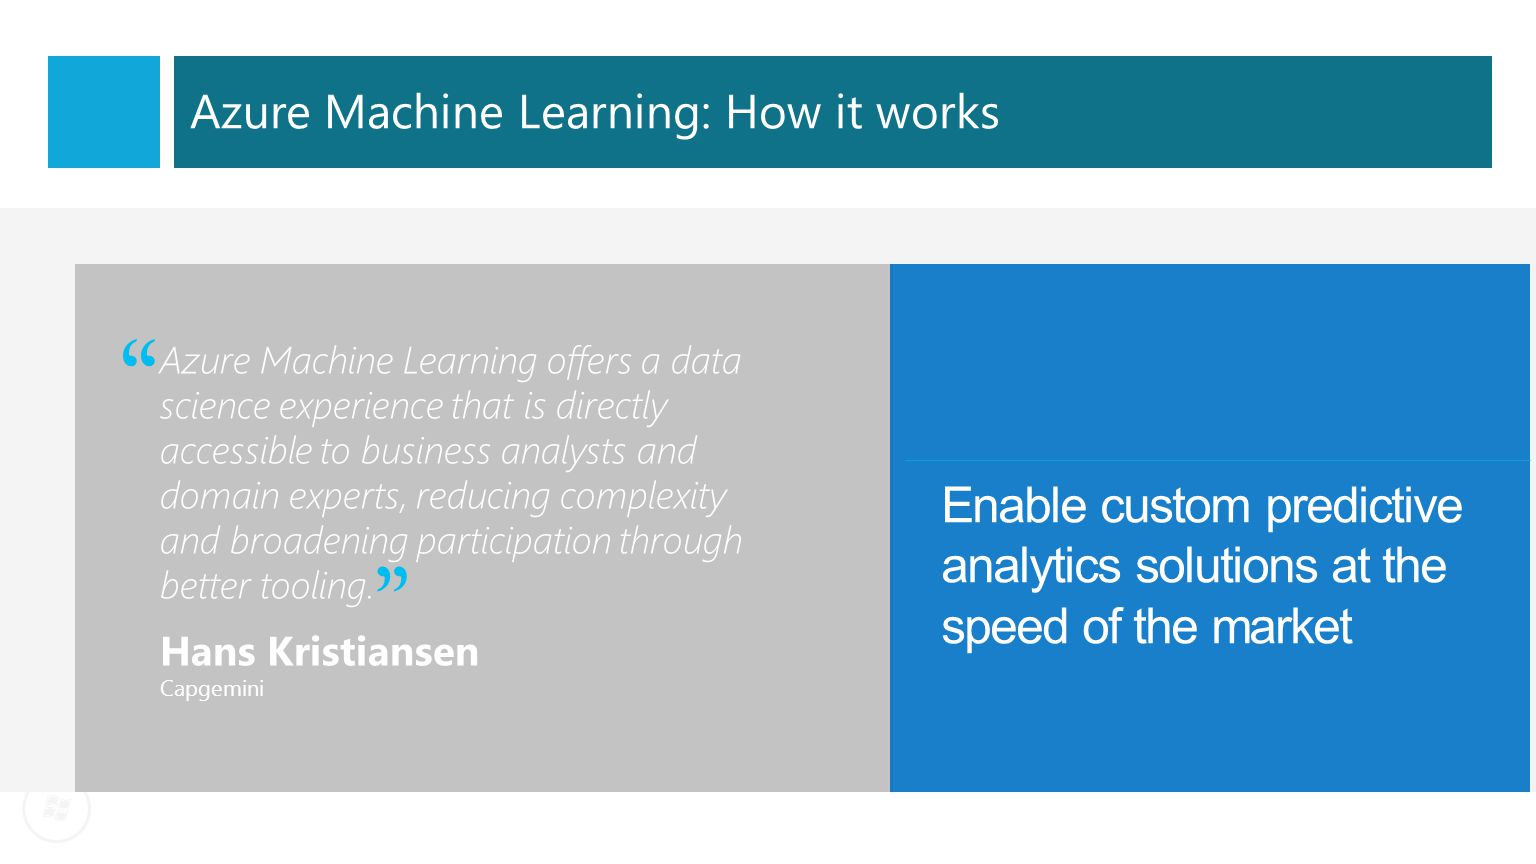 Enable custom predictive analytics solutions at the speed of the market Azure Machine Learning offers a data science experience that is directly acces